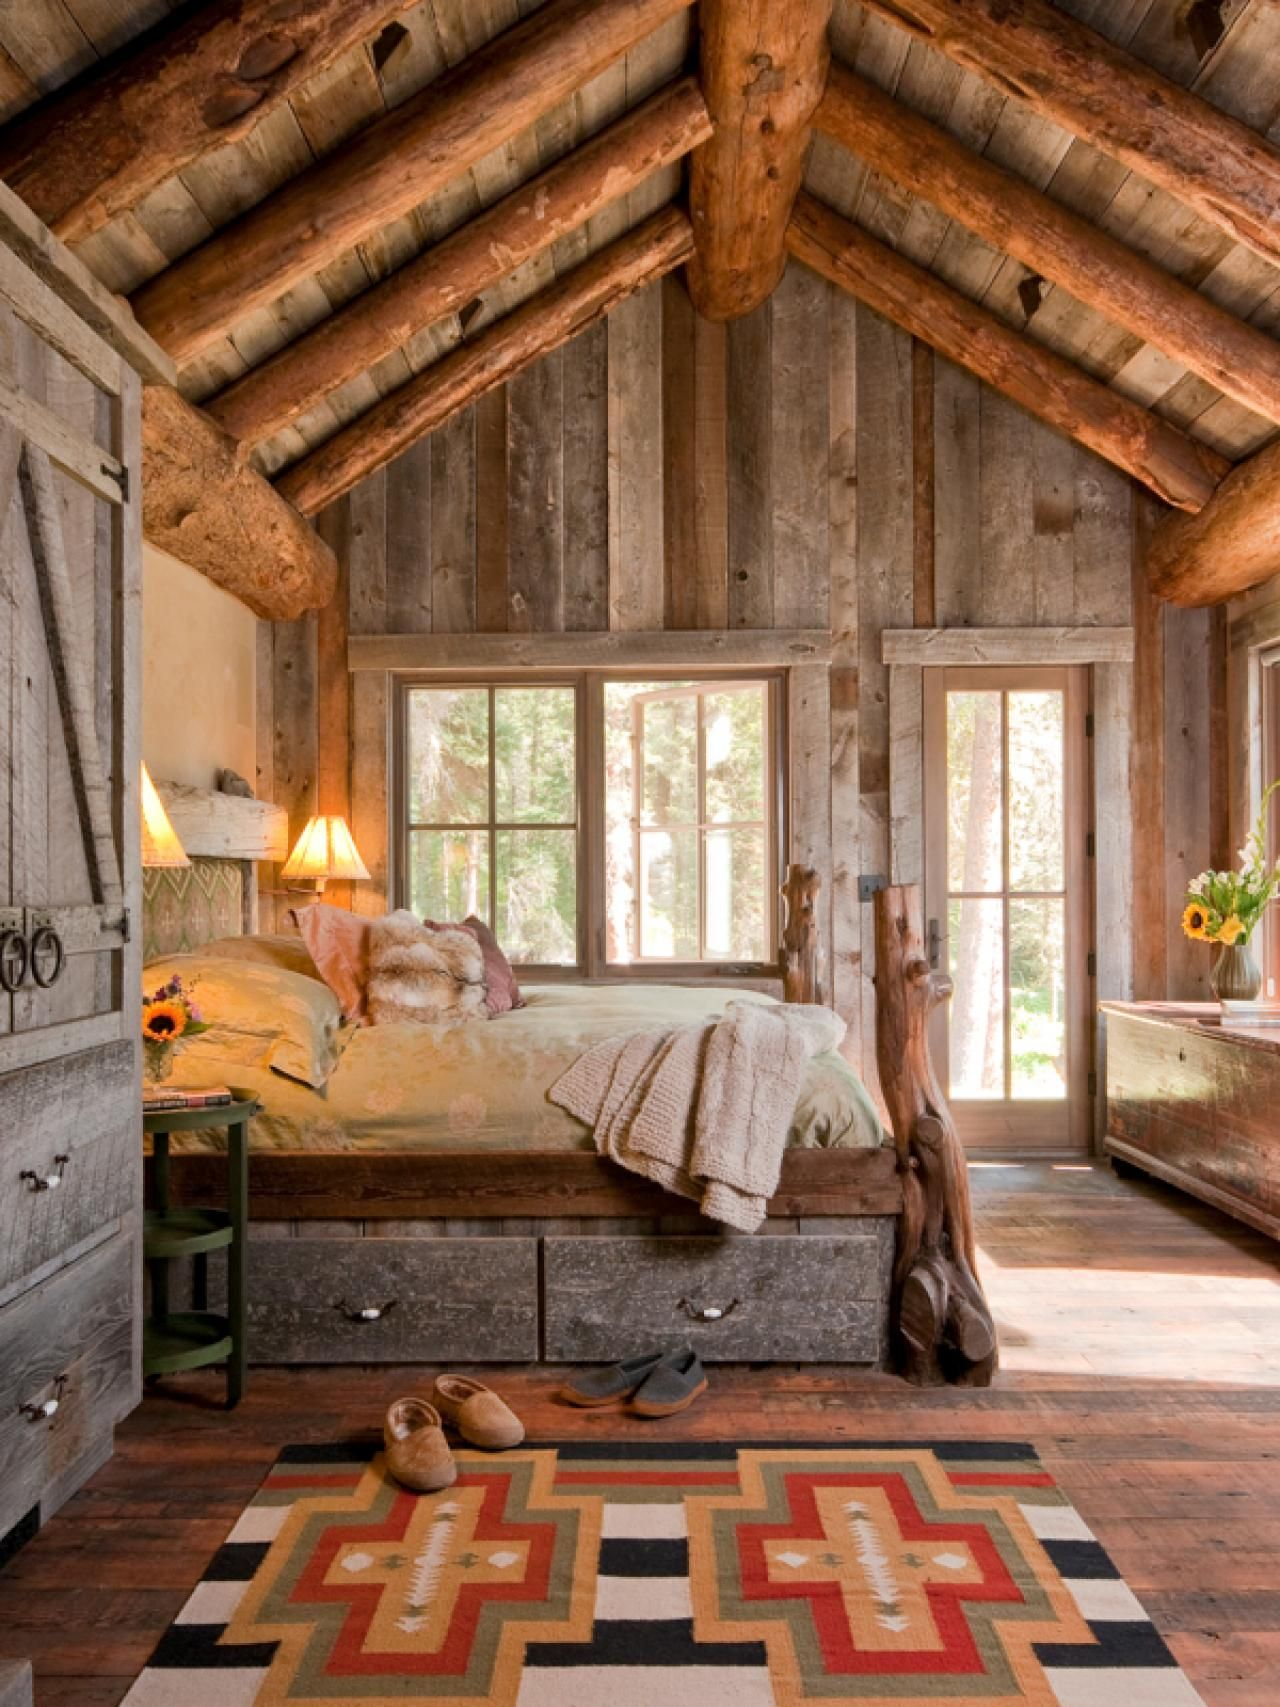 sanctuaries with style cabin fever34 bedsbedroom ideasbedroom decorating - Cabin Bedroom Decorating Ideas